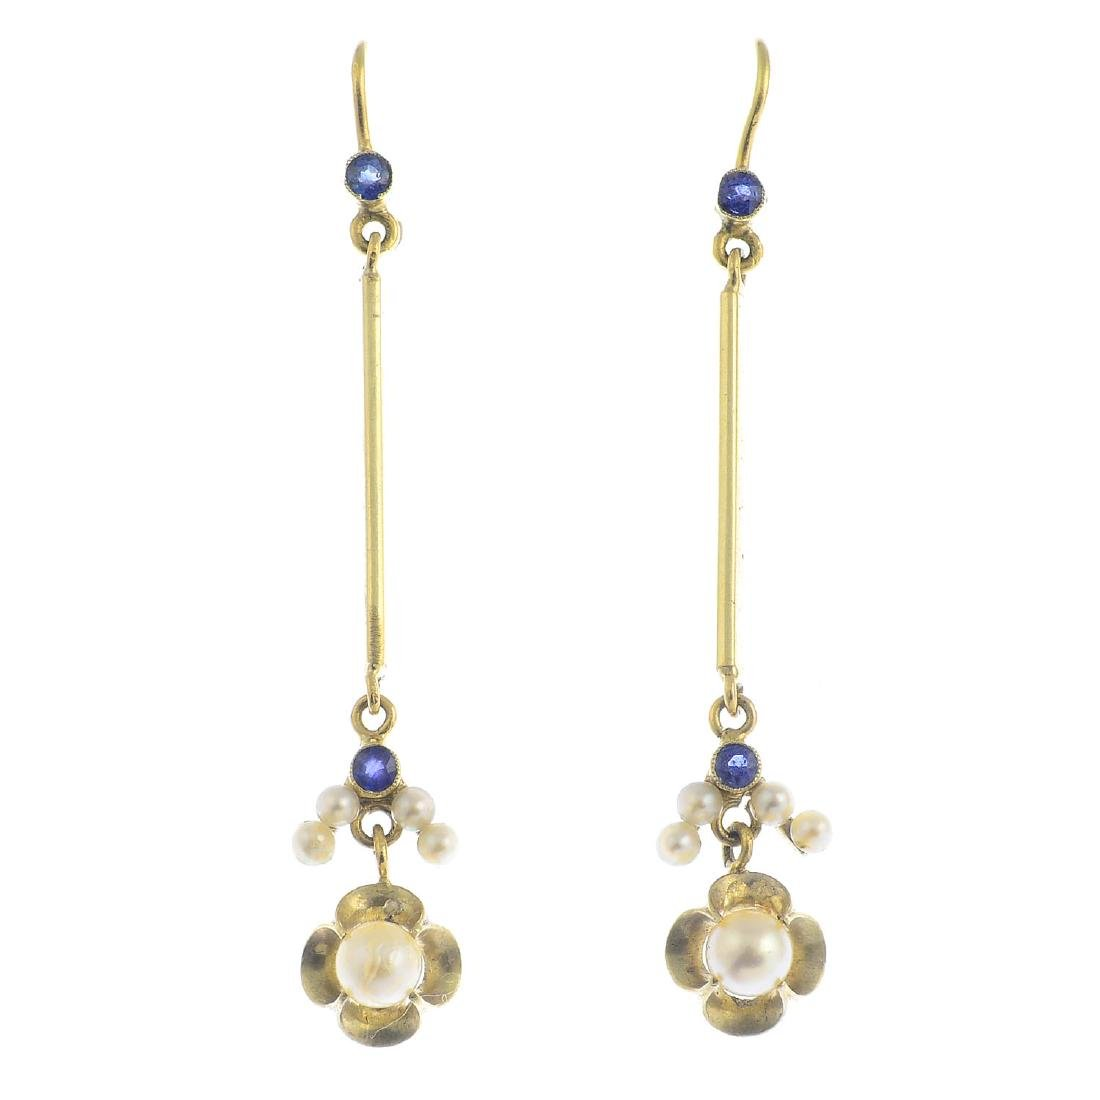 A pair of sapphire, cultured and seed pearl earrings.